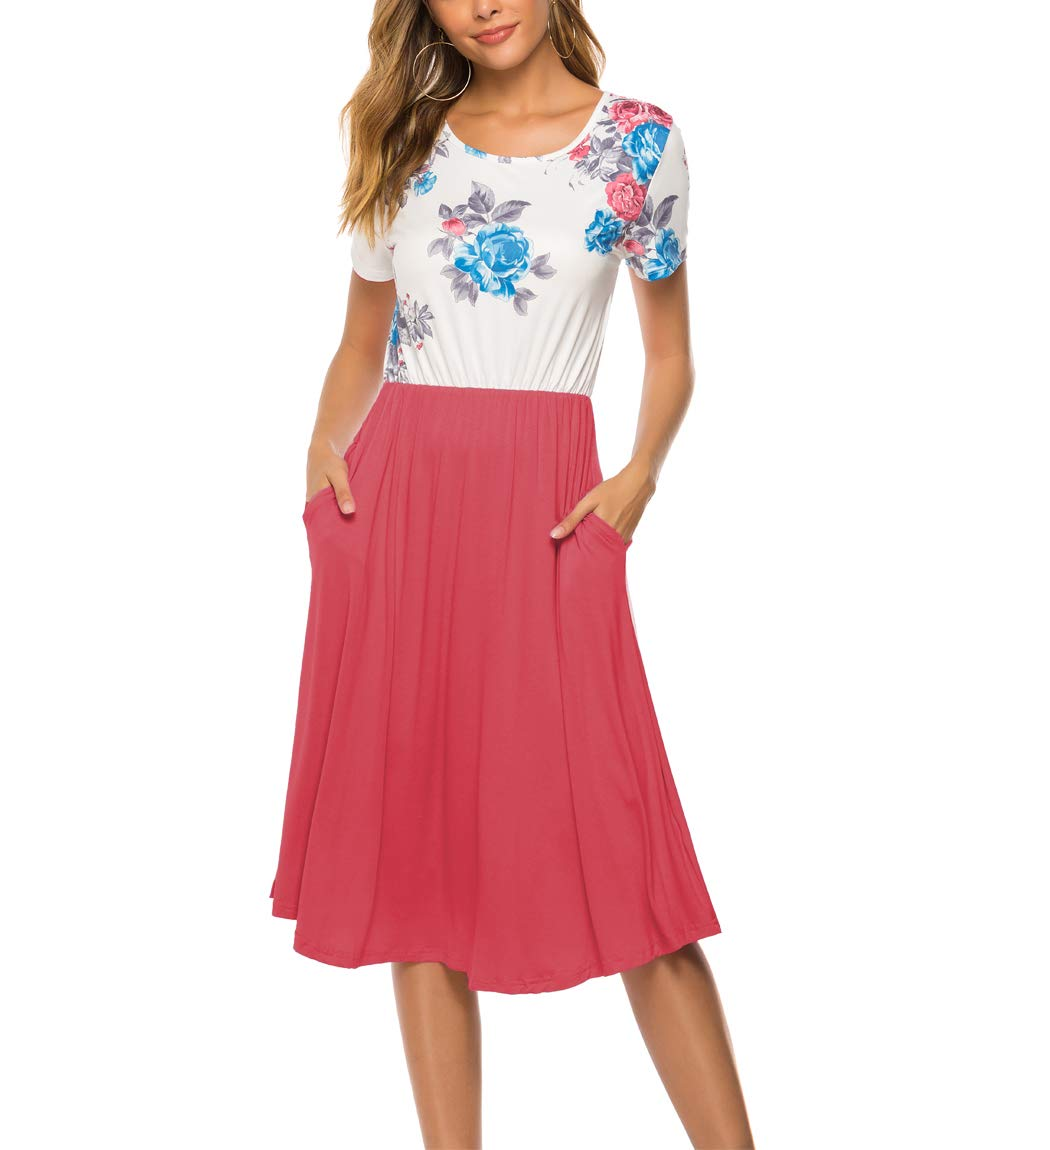 Available at Amazon: Hount Women's Casual Short Sleeve Floral Swing Midi Dress with Pockets